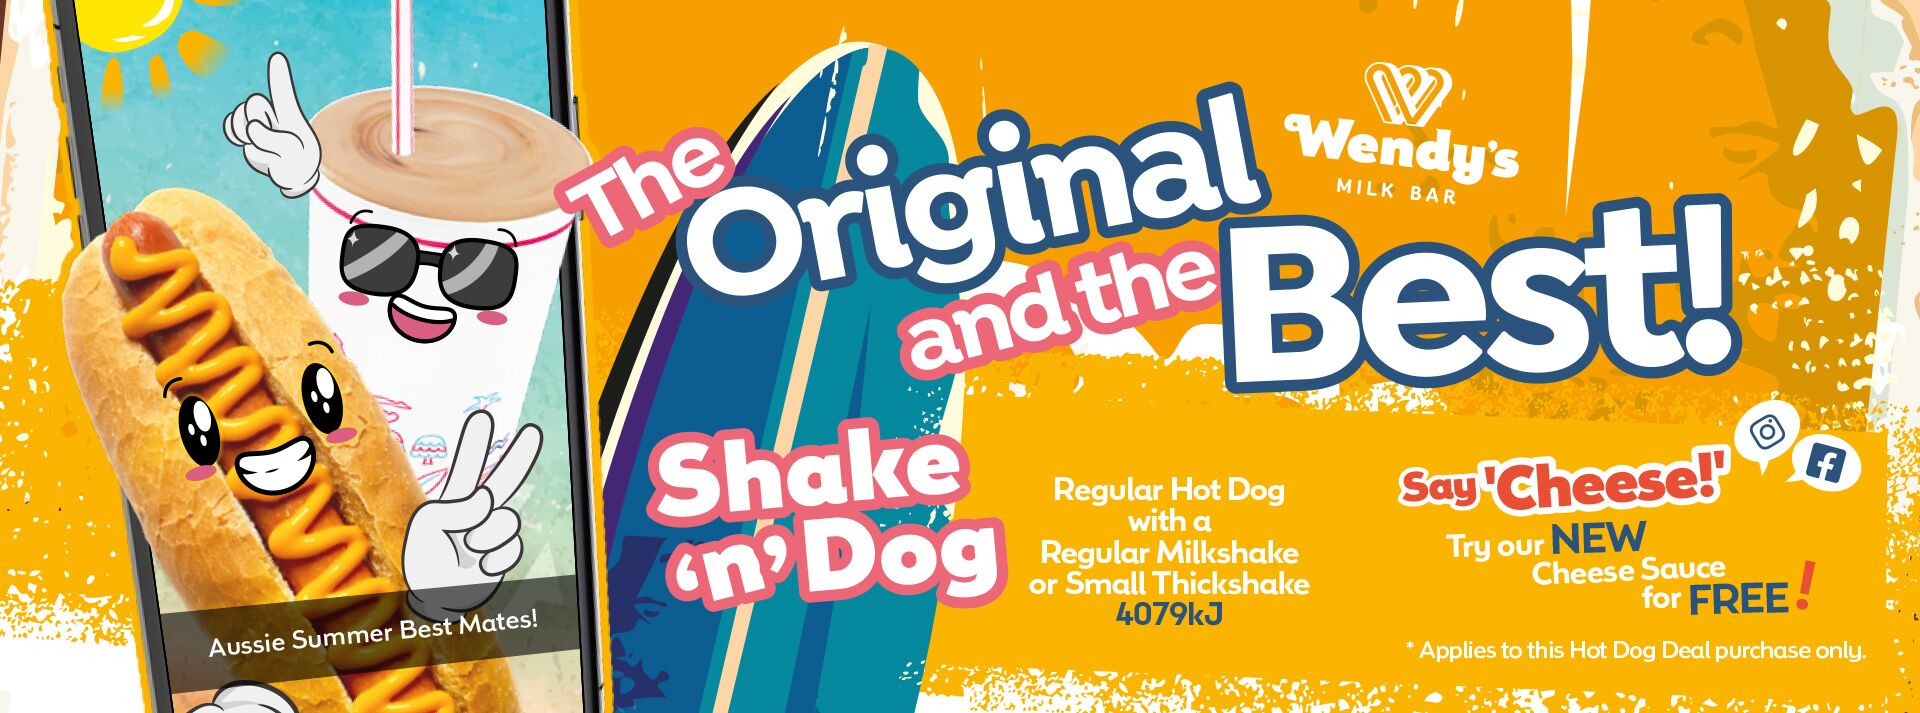 The Original and the best! Shake 'n' Dog